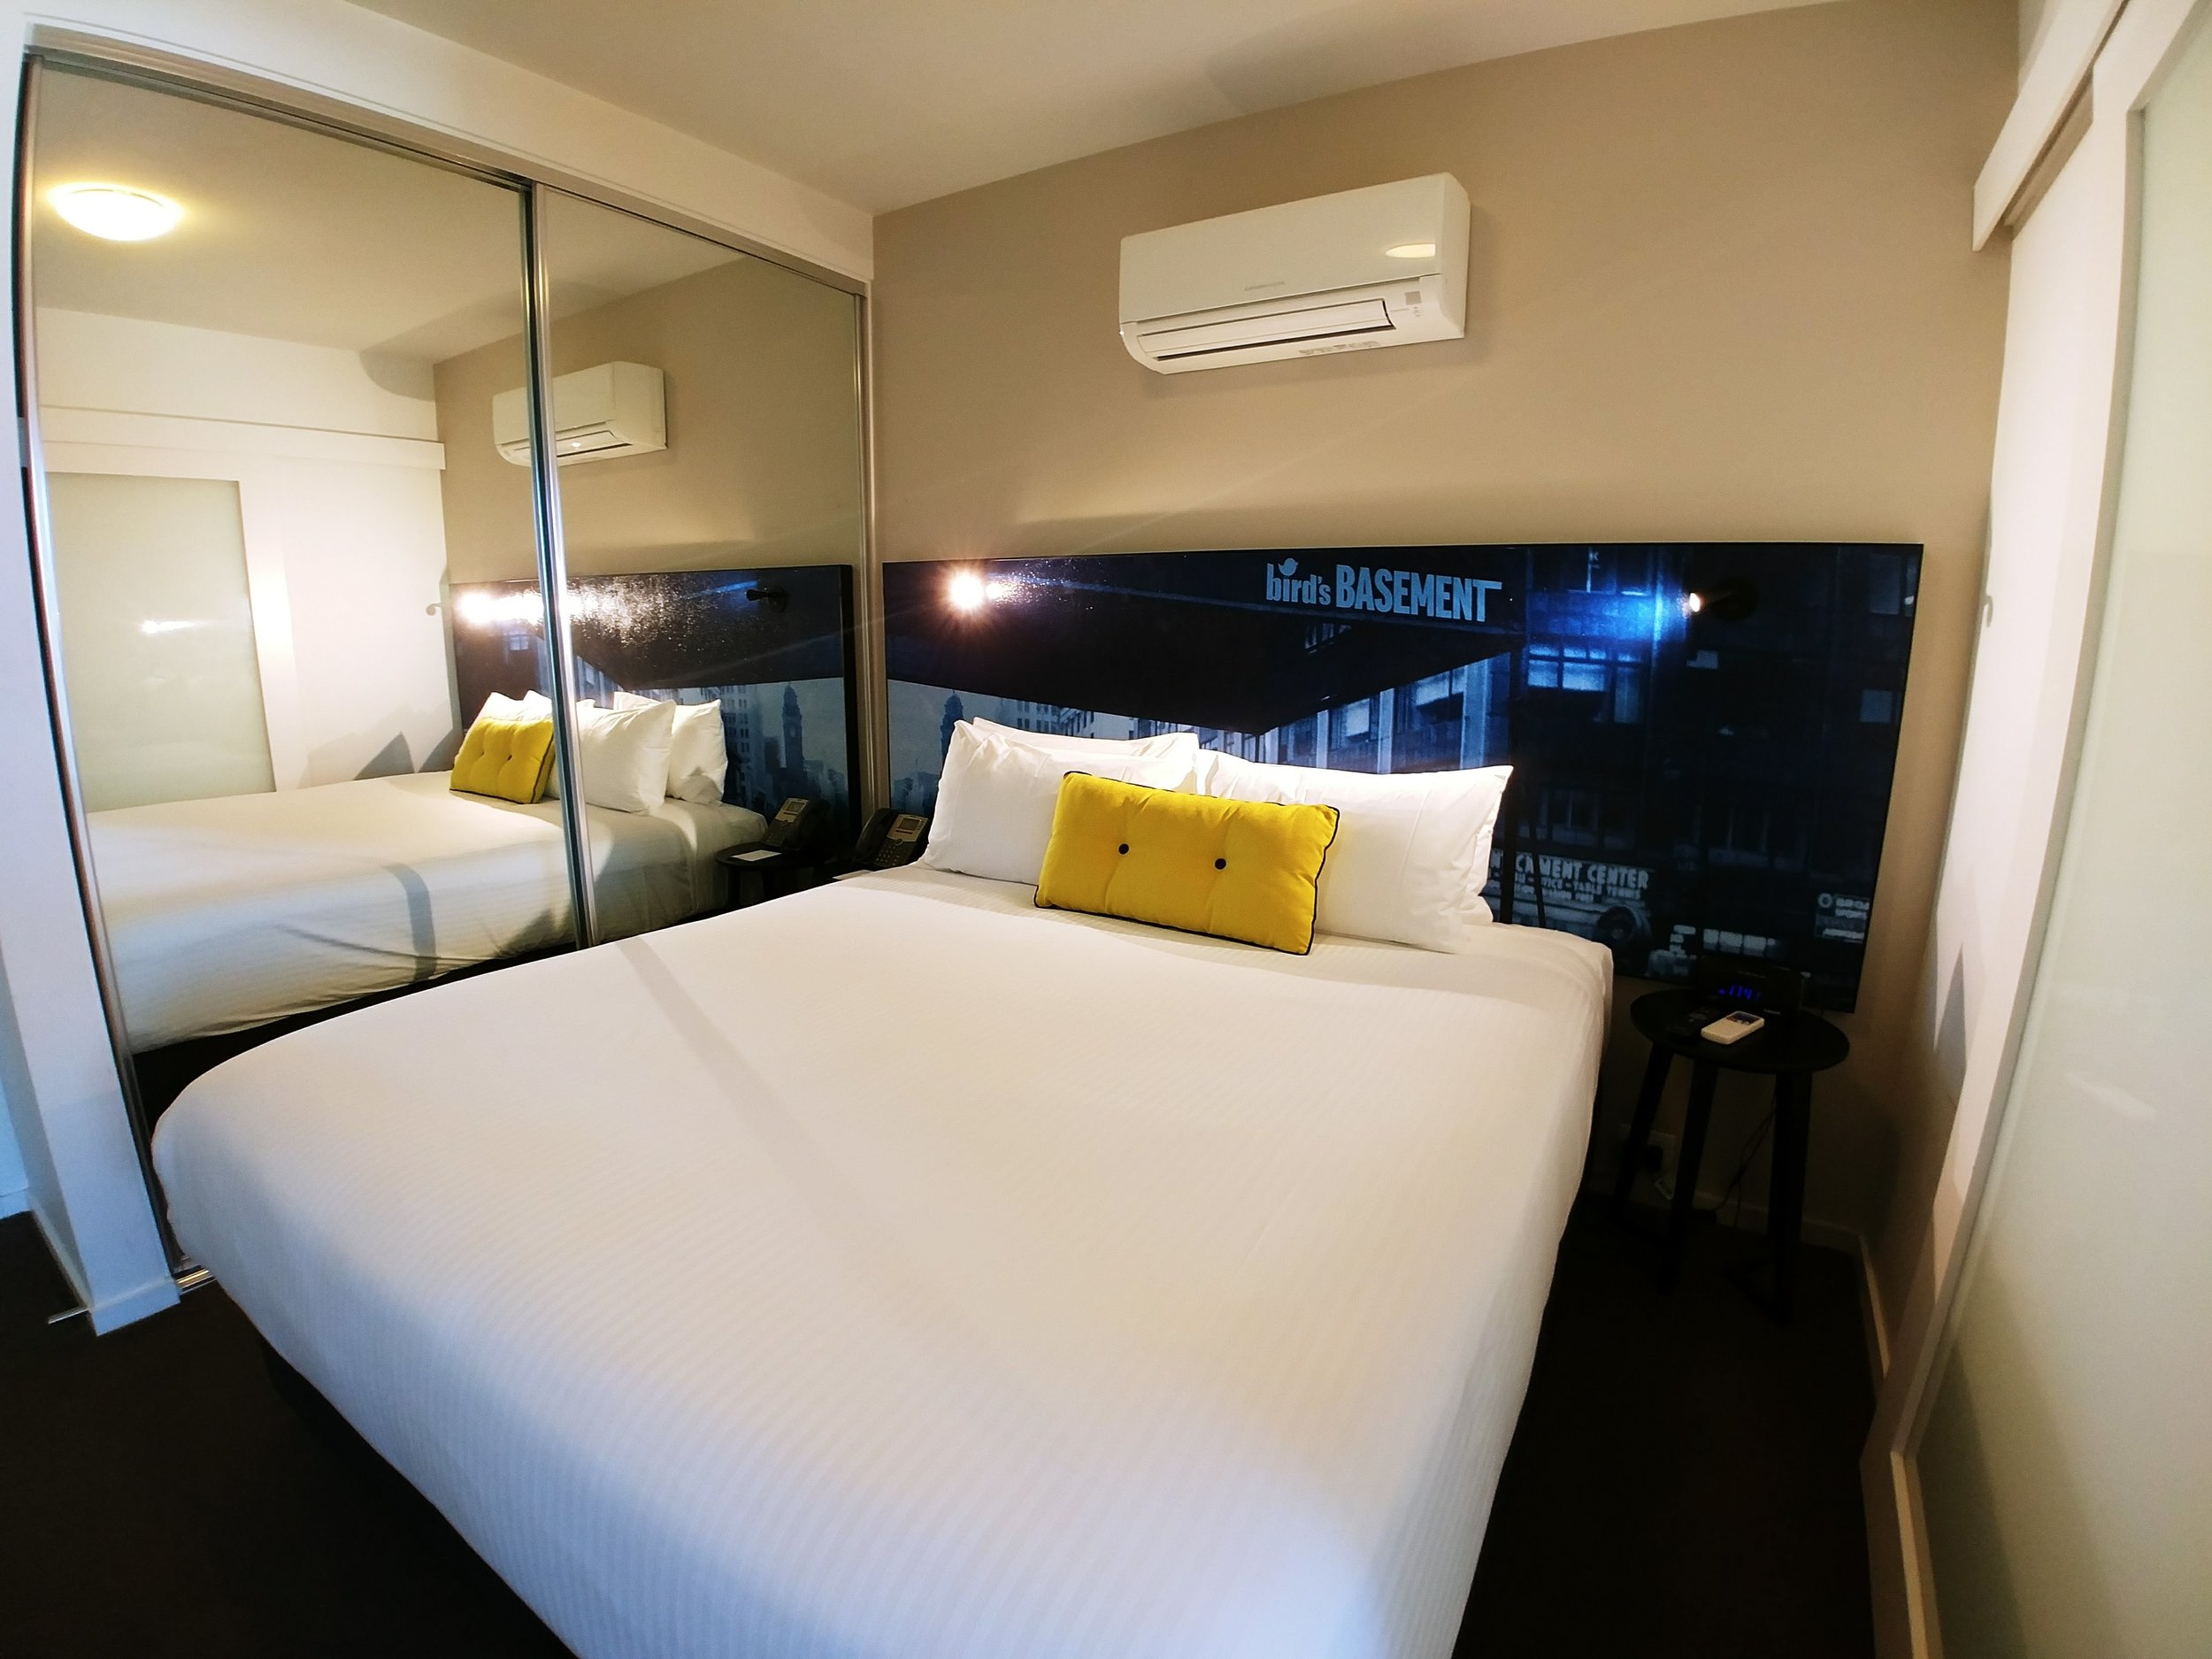 The bed was actually surprisingly comfortable and well done to the housekeeping team for making the bed super clean and crisp without any crumpling marks.